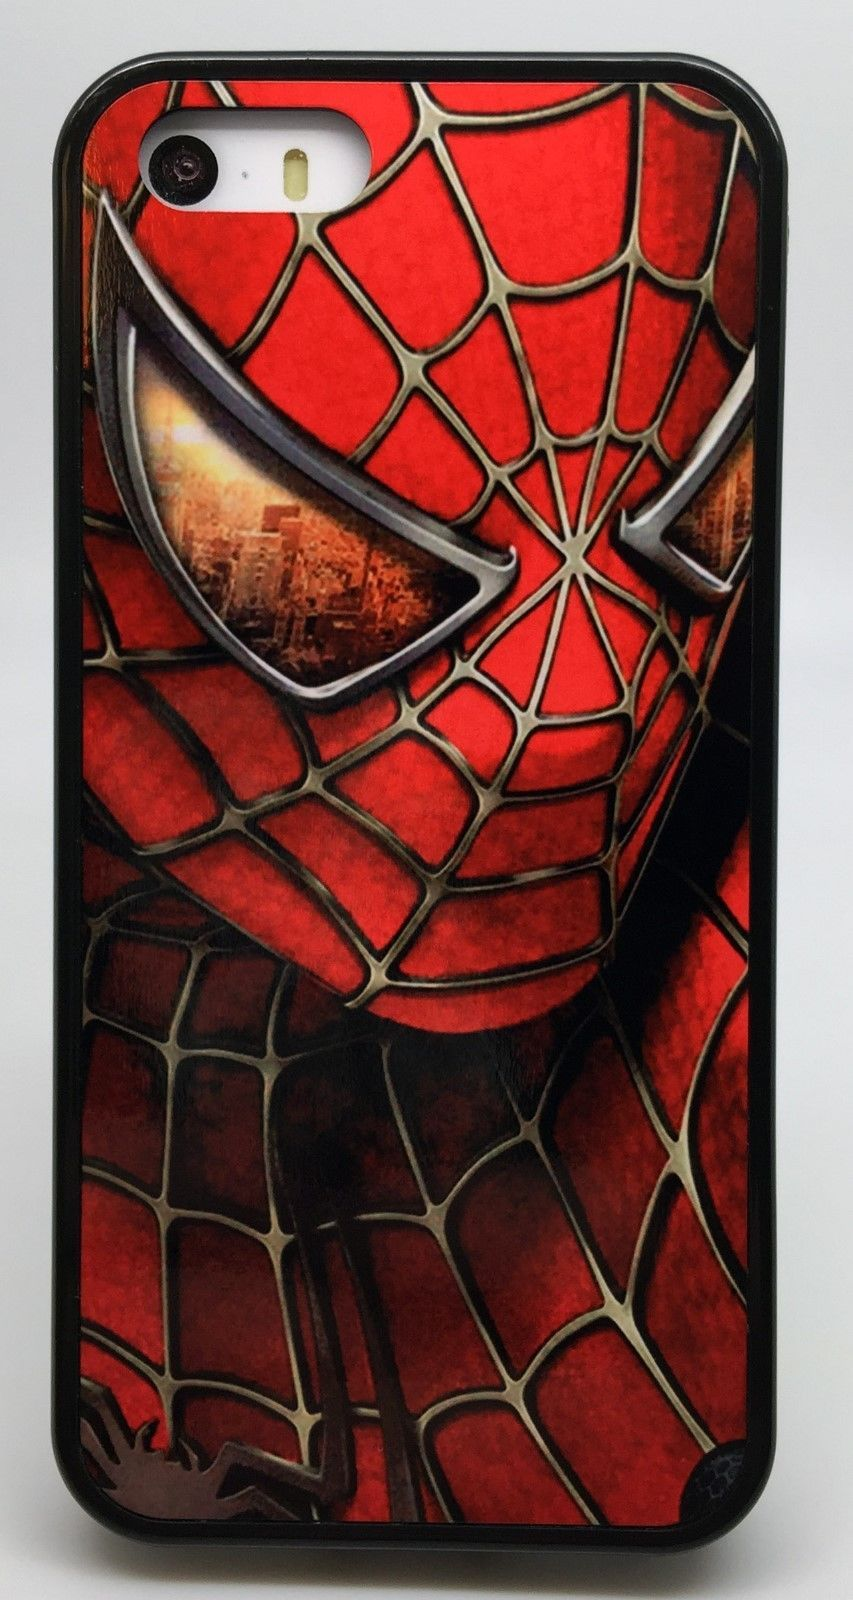 14.99 Amazing Spiderman 3 Black Phone Case Cover For